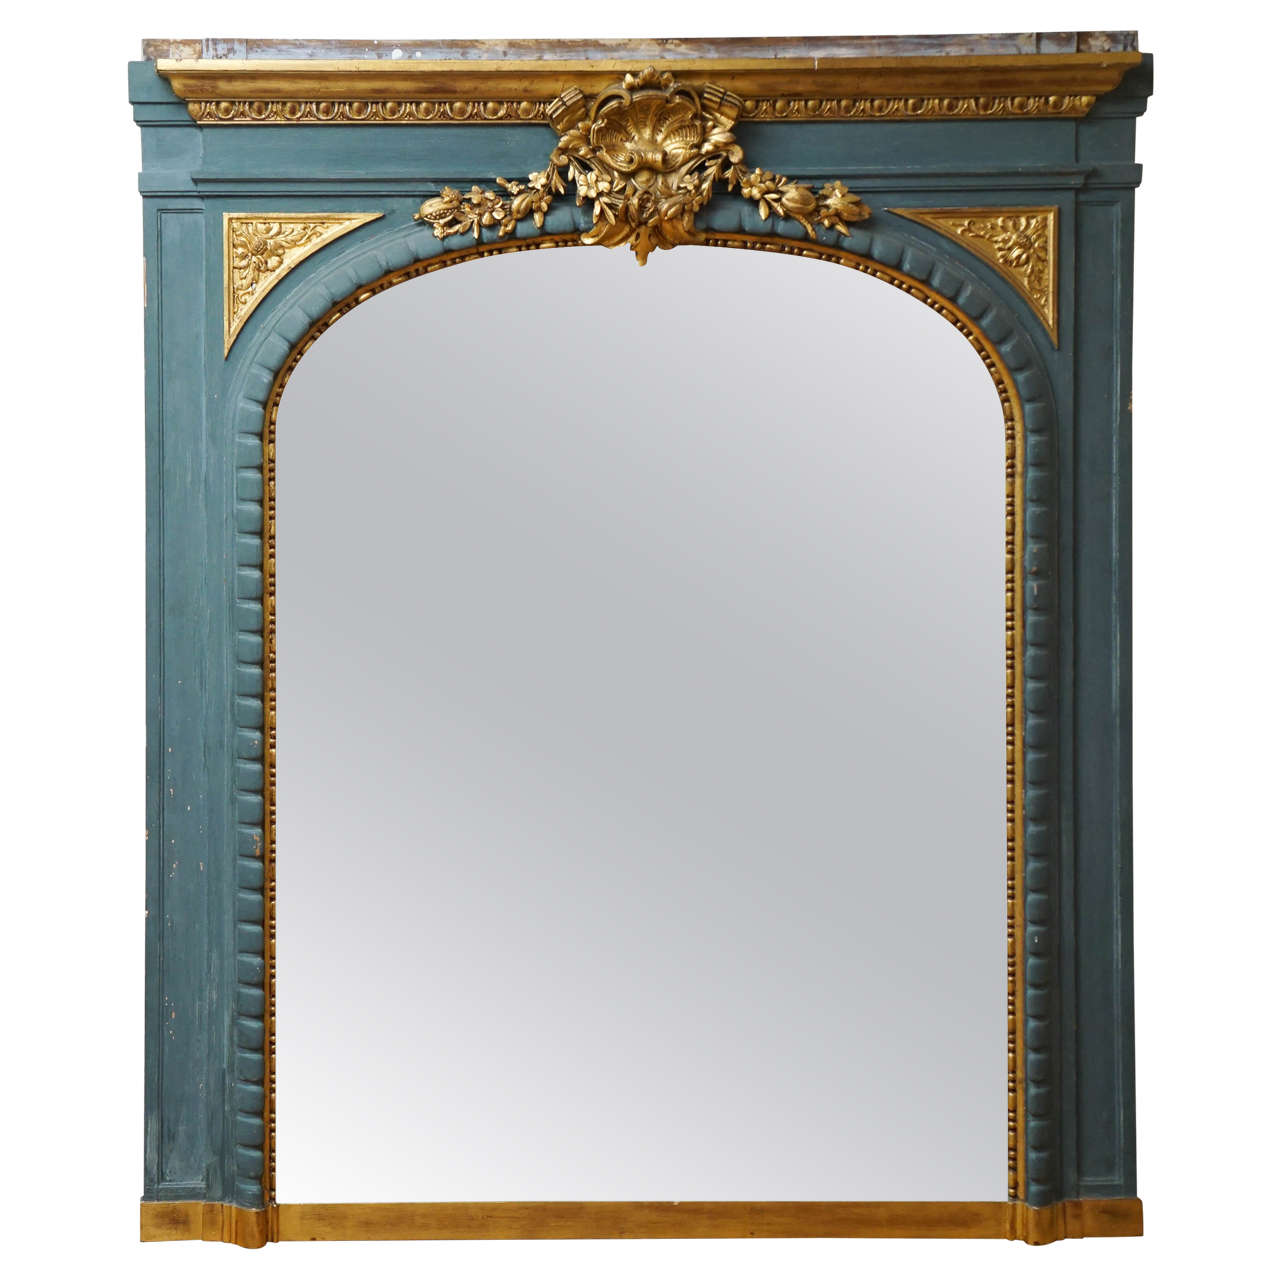 Neoclassical Mantel Mirror in Blue and Gold